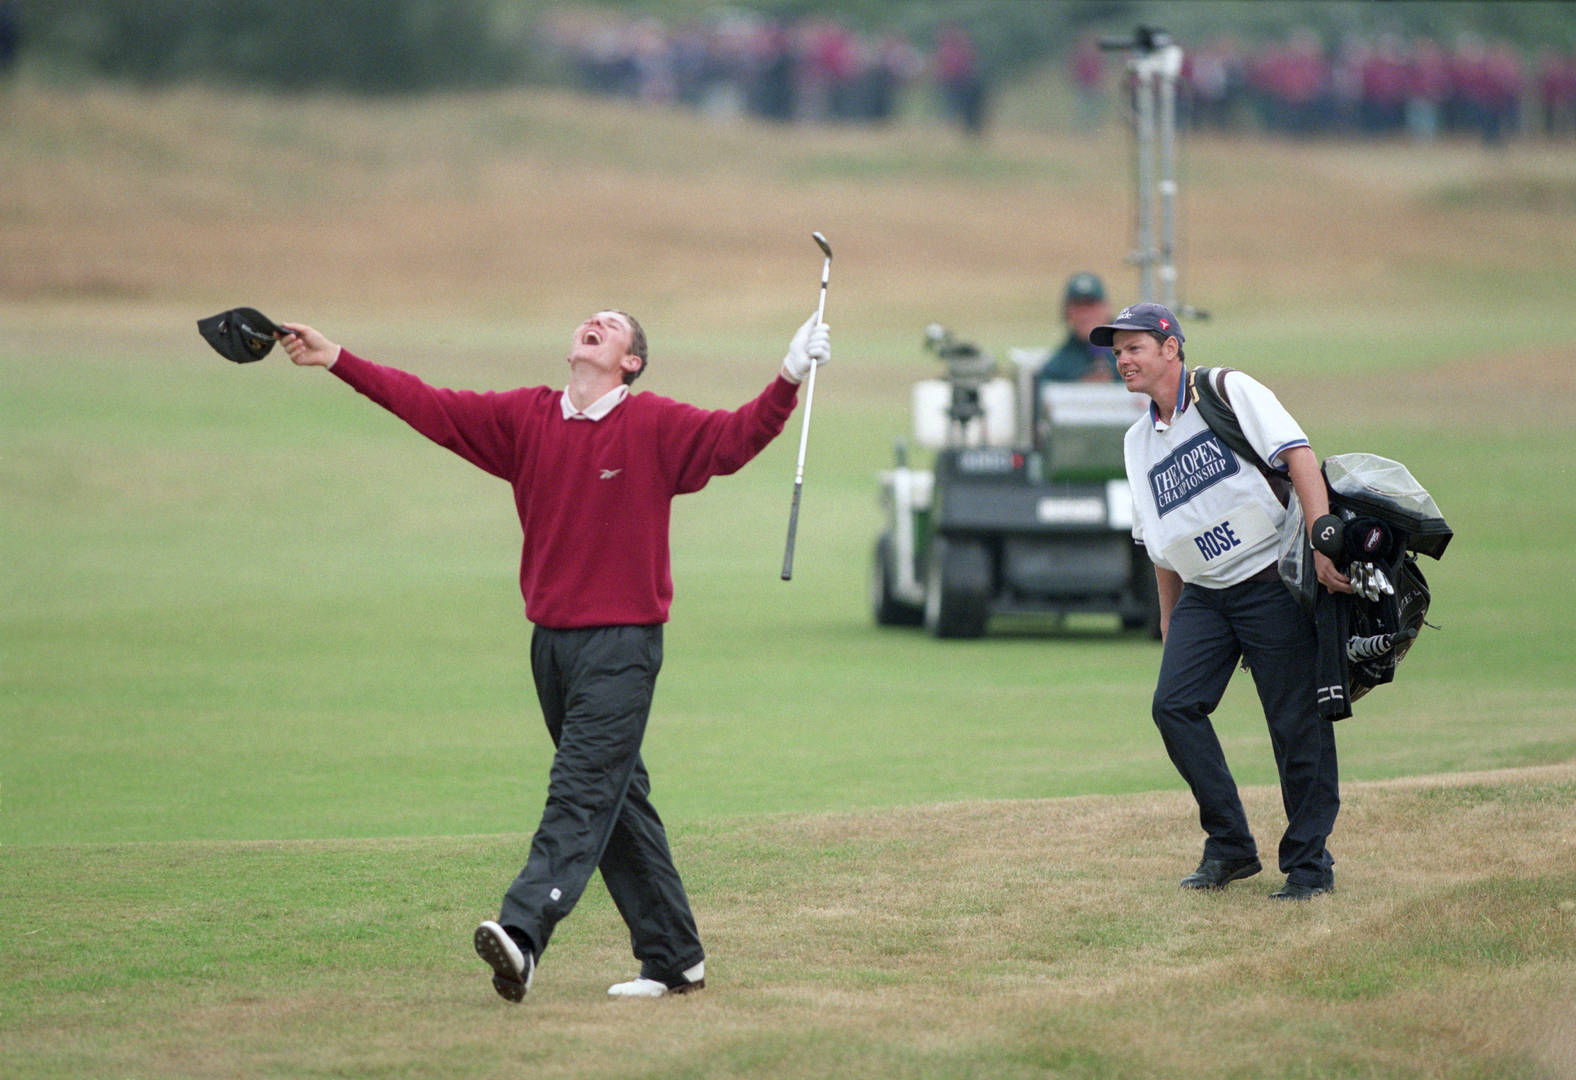 Justin Rose makes eagle on 18 at Royal Birkdale to win the Silver Medal, 1998